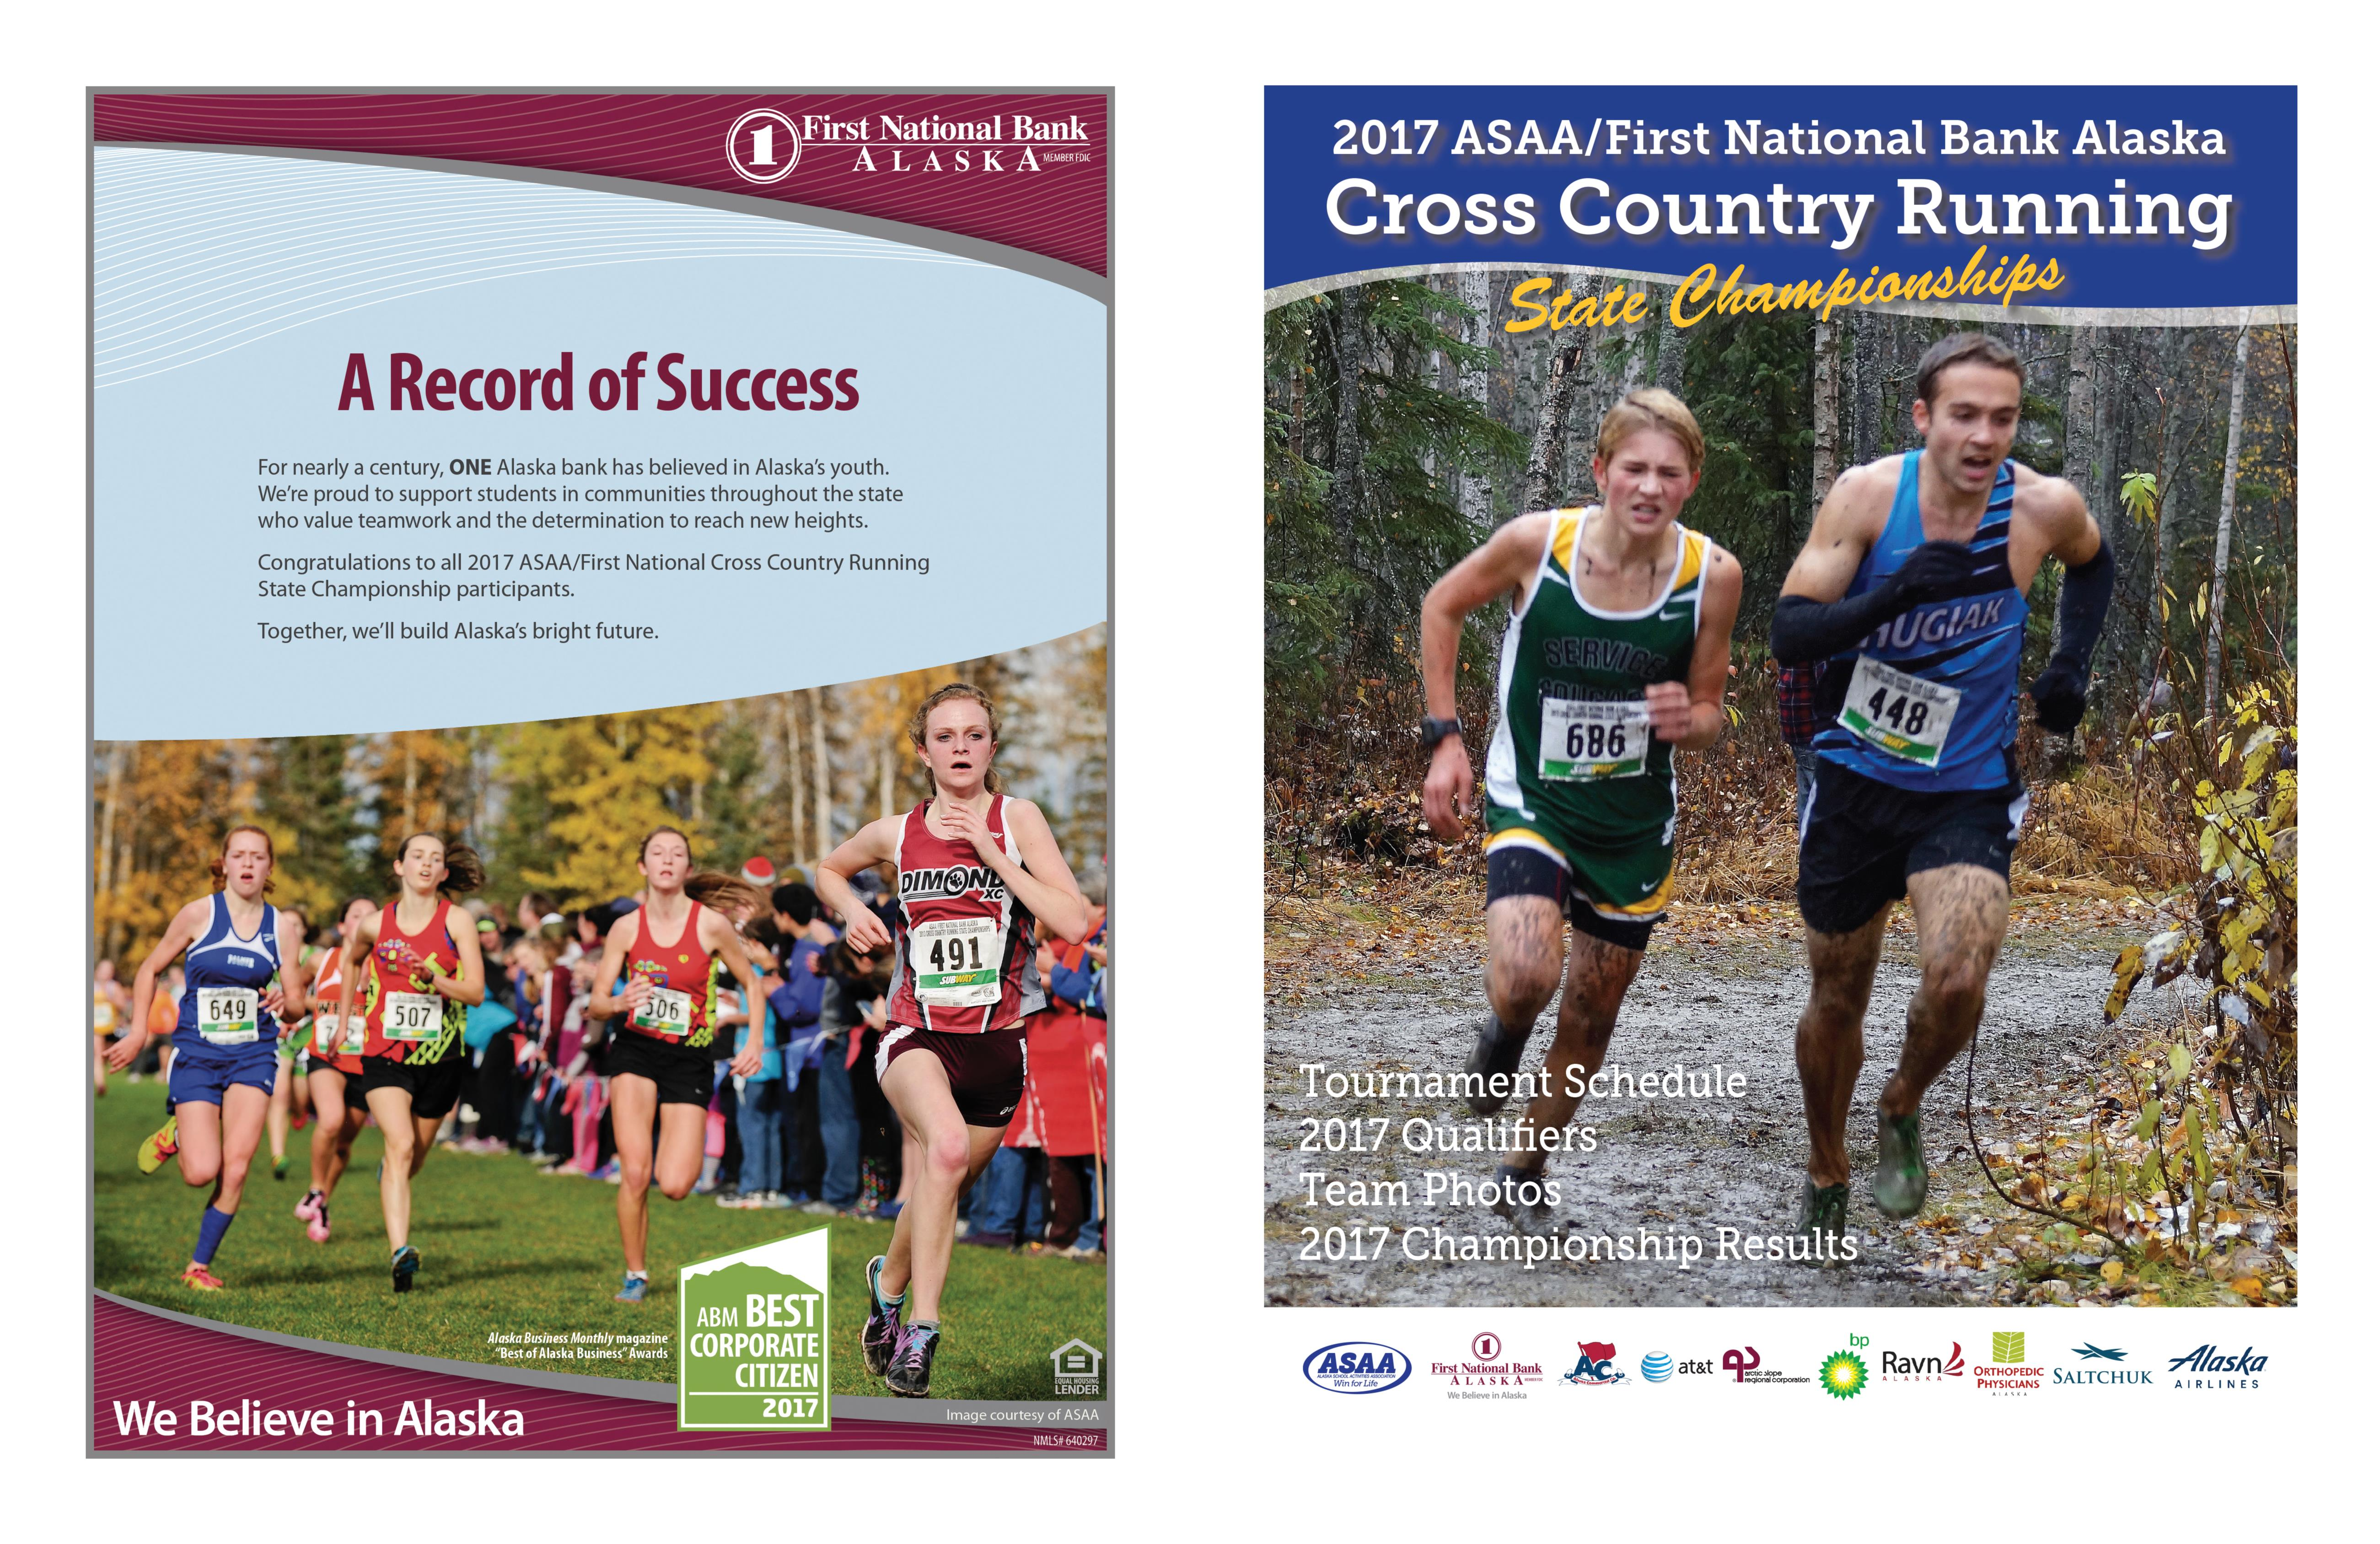 2017 ASAA/First National Bank Alaska Cross Country Running State Championship Program cover image